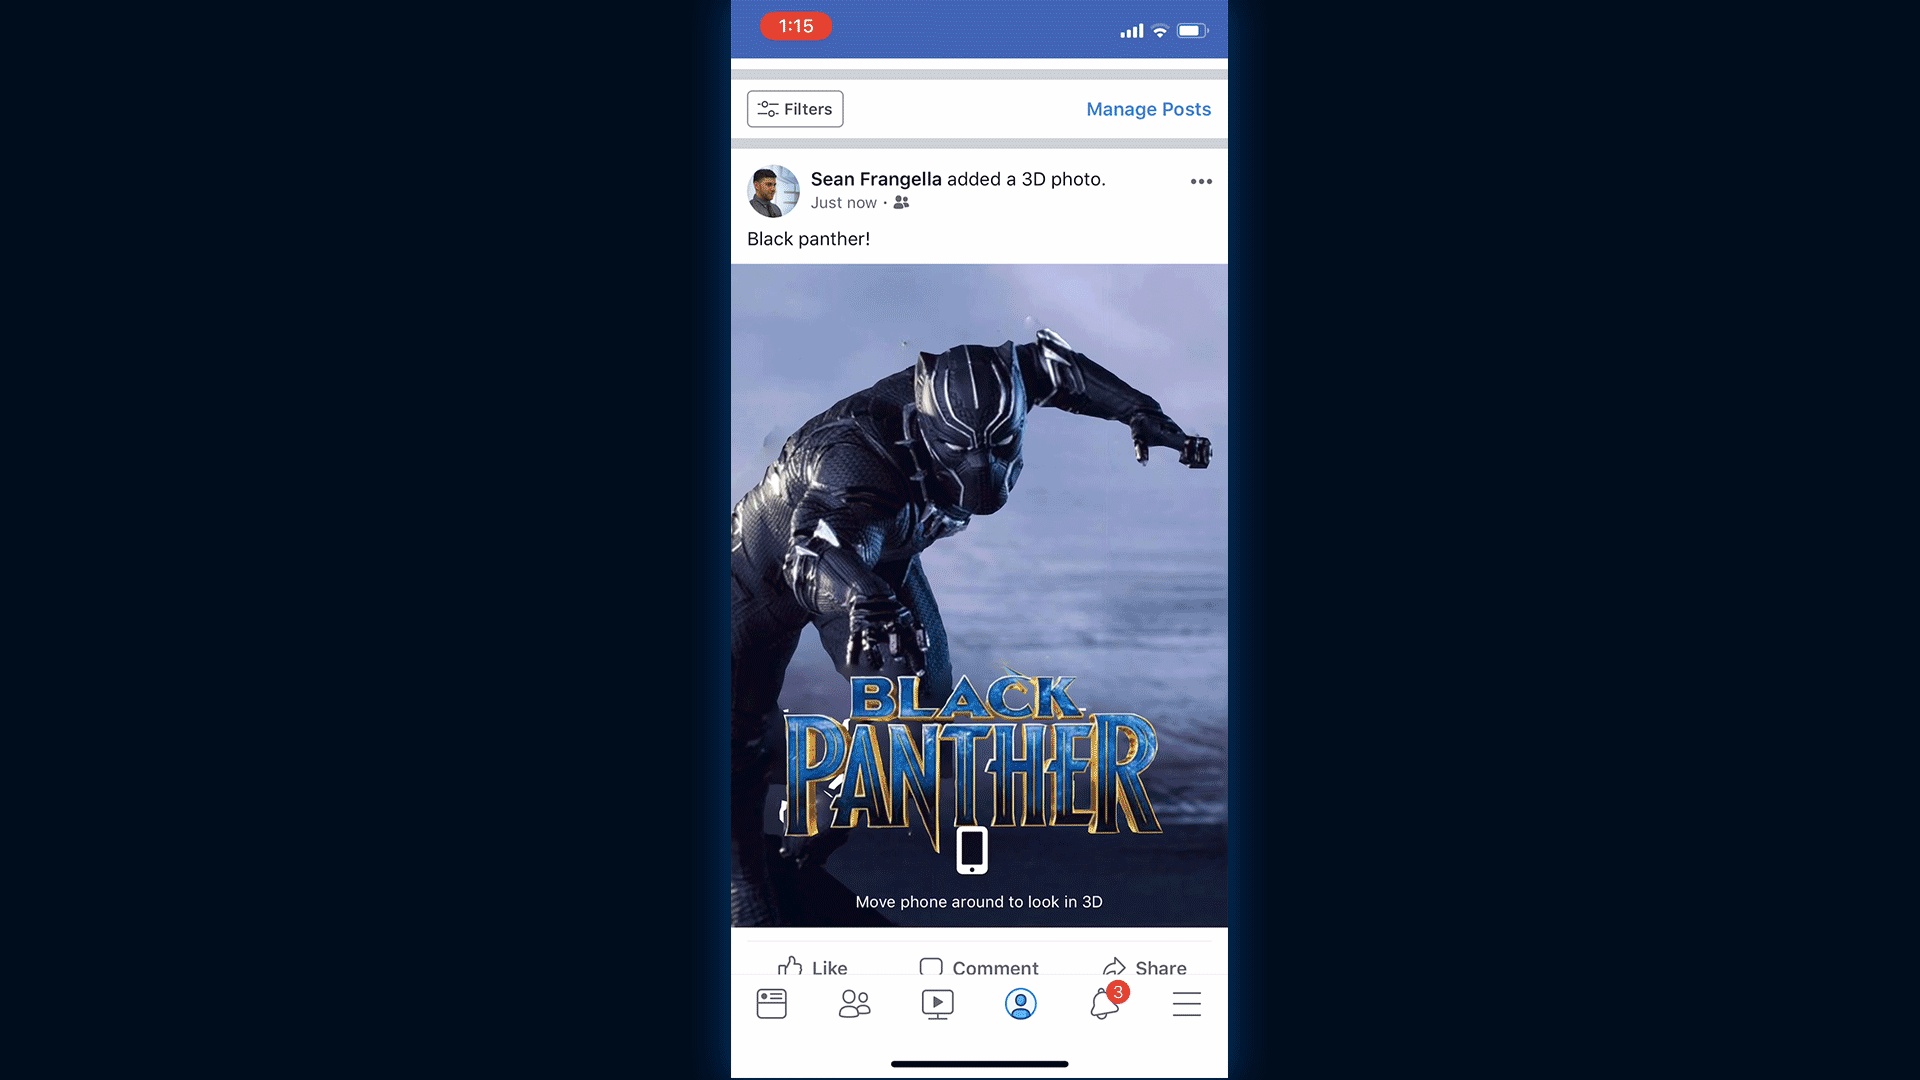 The 3D photo will now appear in your Facebook feed!